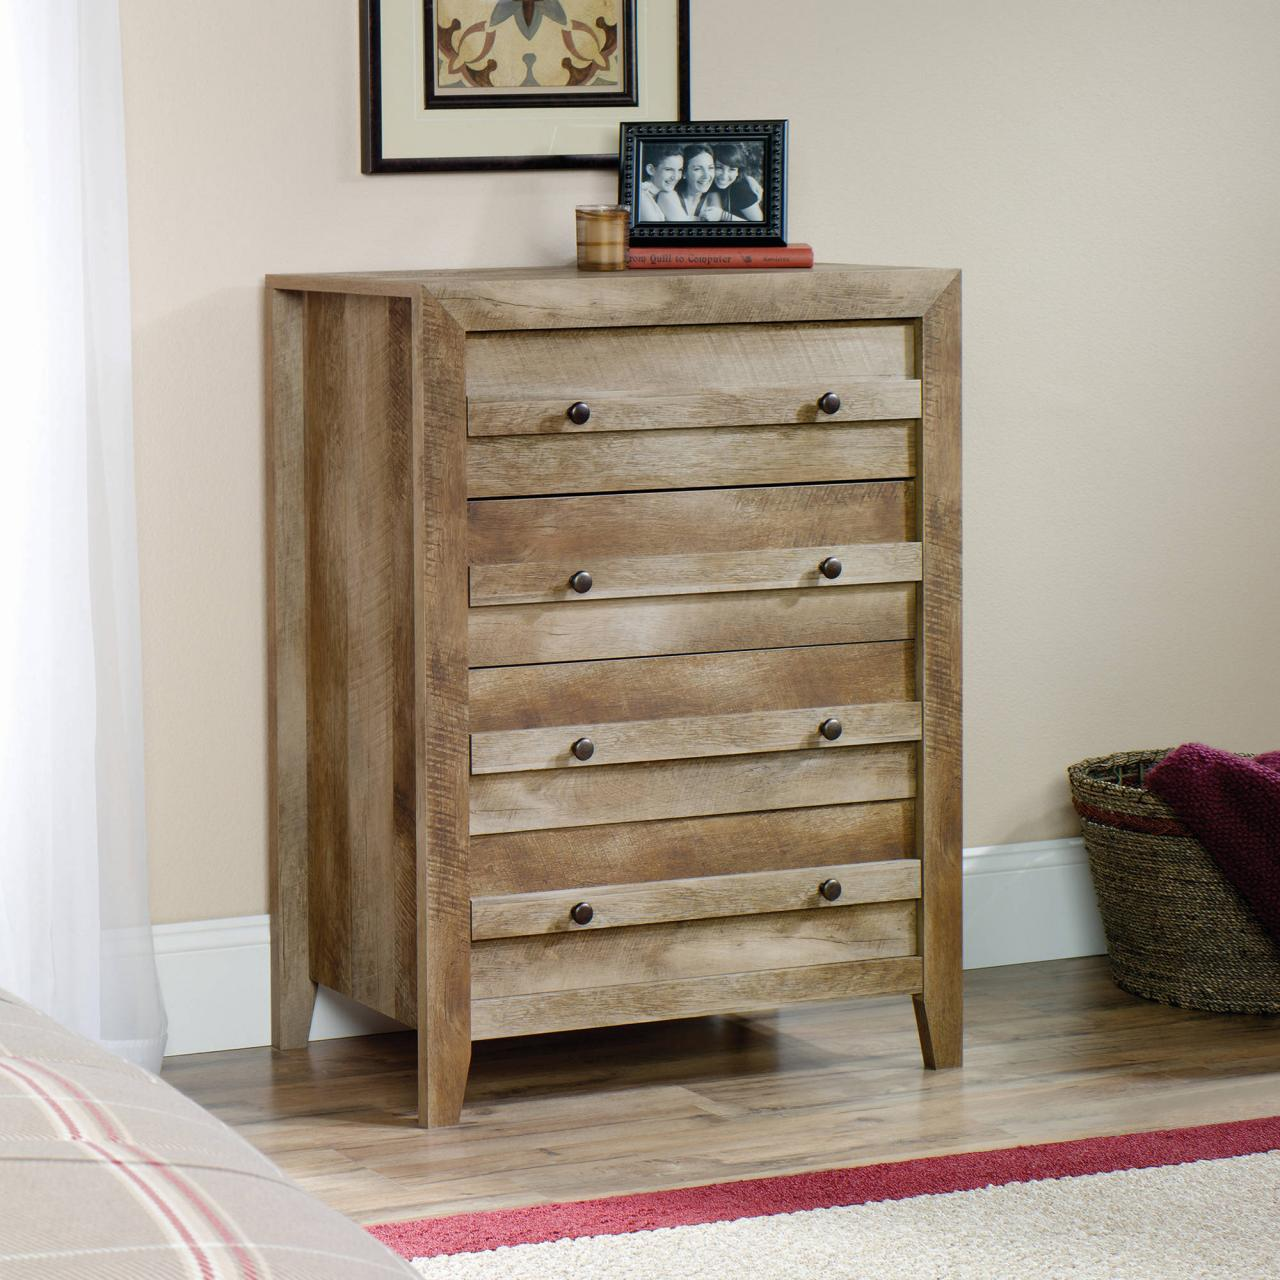 1: Rustic Wooden Chest